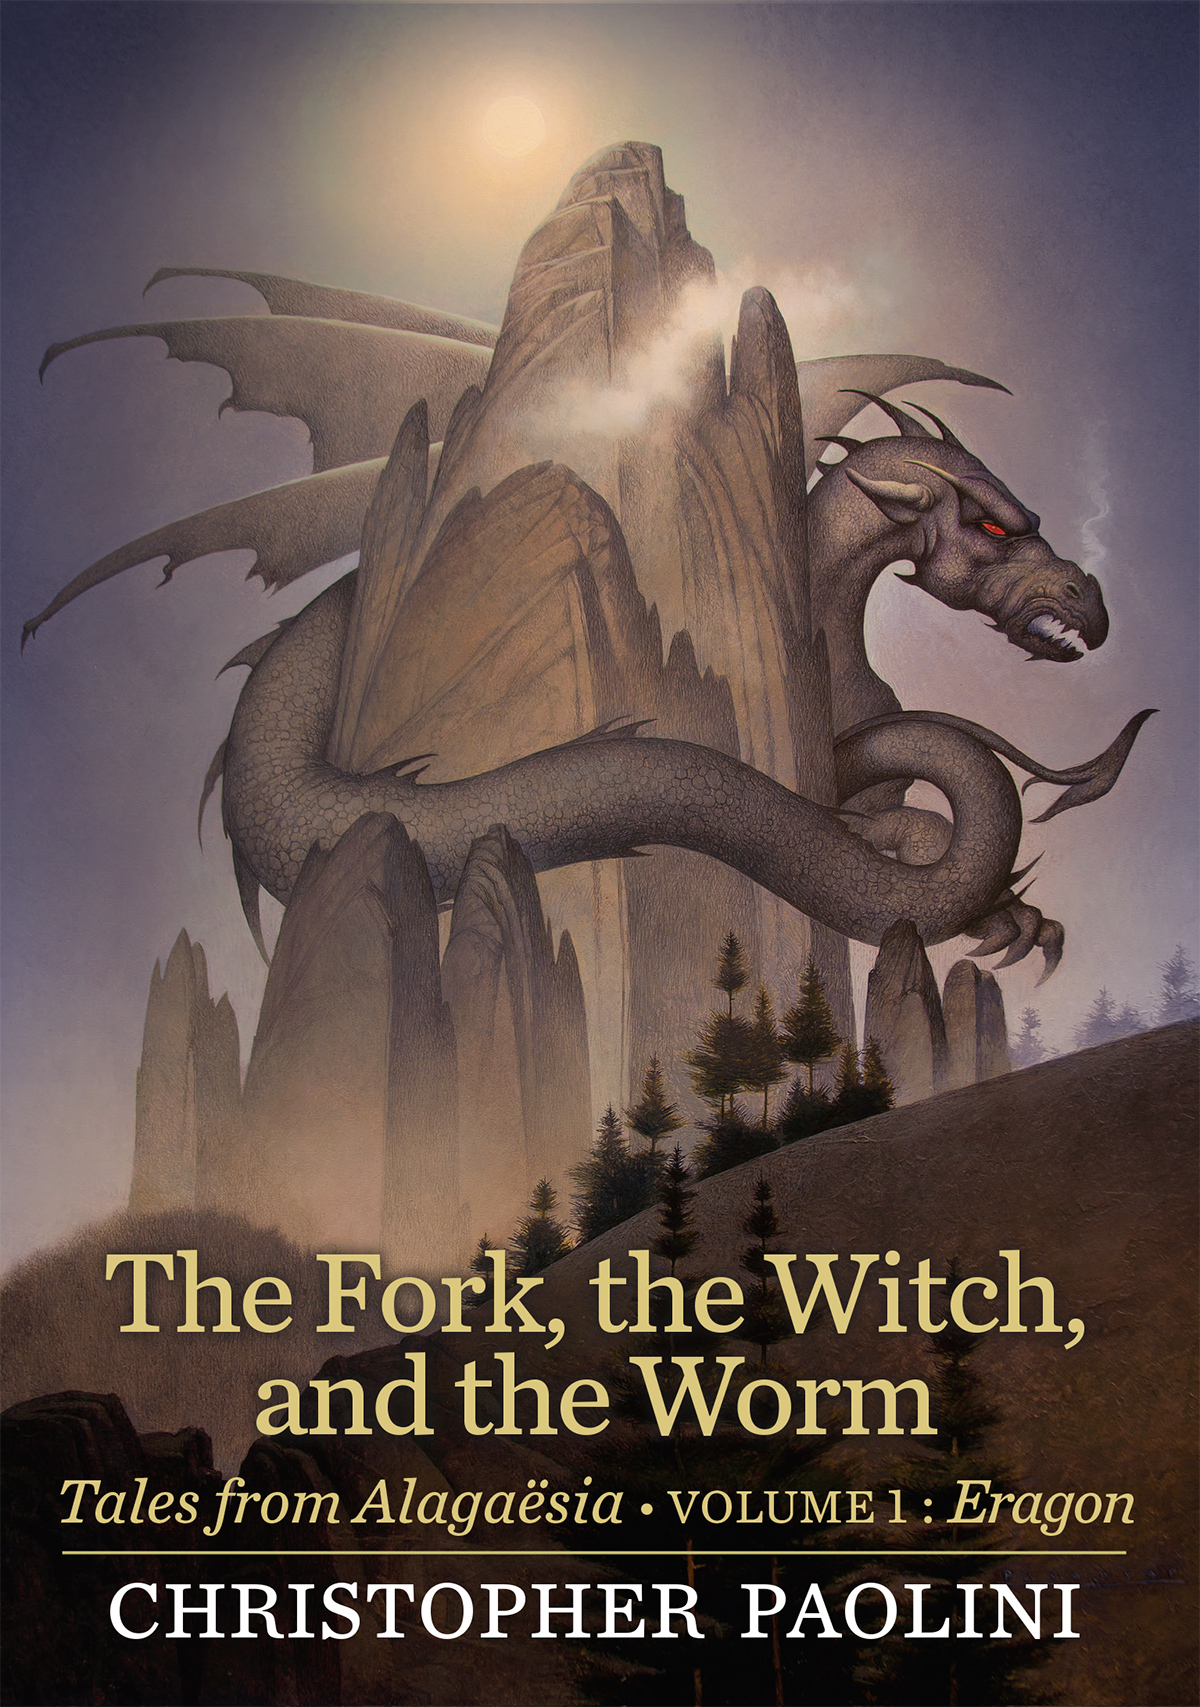 The Fork the Witch and the Worm  Paolini